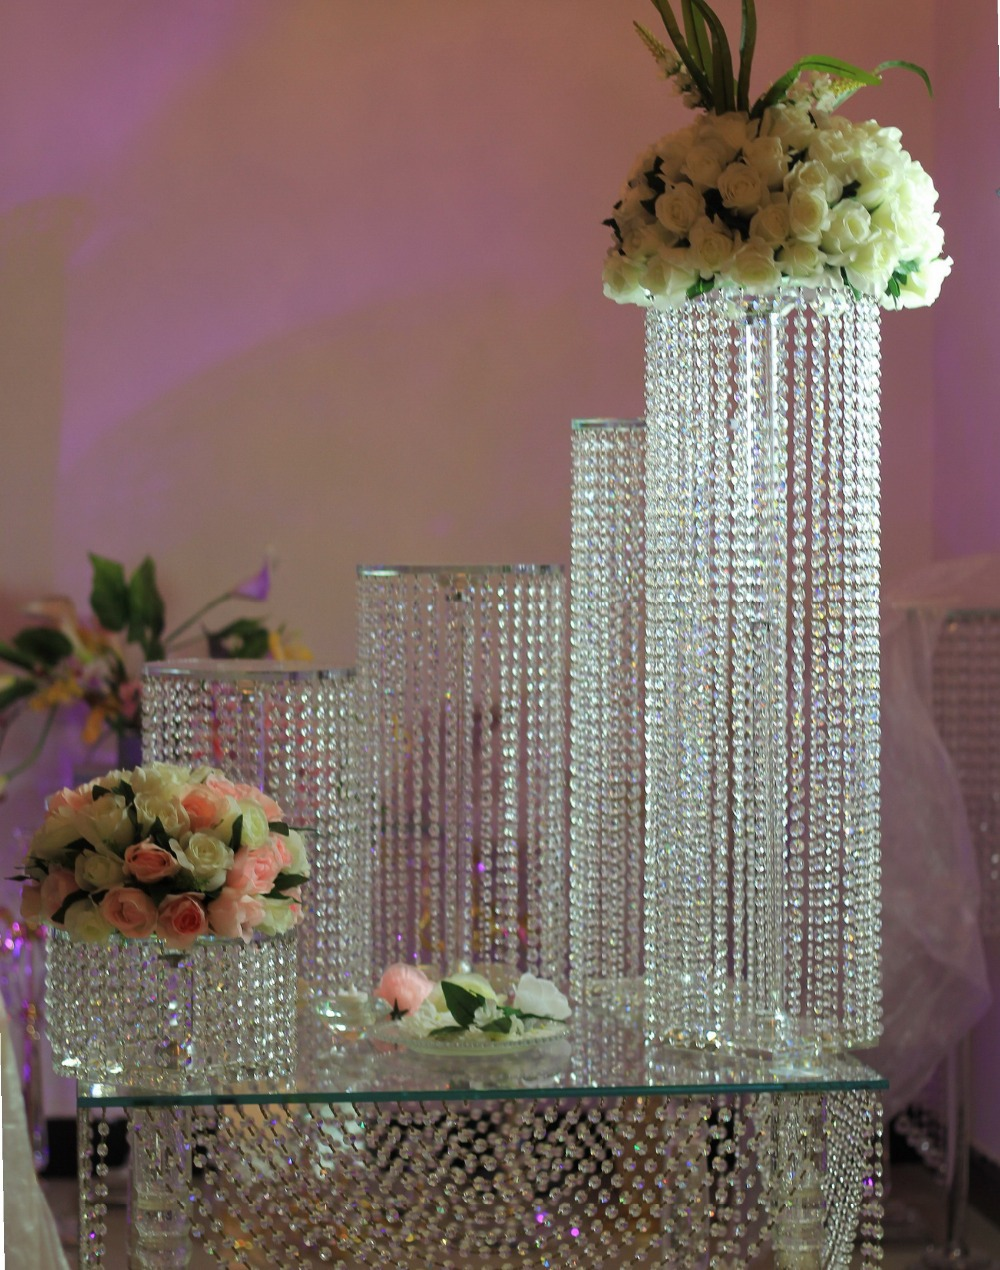 6pcsset crystal chandelier wedding cake stand for wedding 6pcsset crystal chandelier wedding cake stand for wedding centerpiece in party diy decorations from home garden on aliexpress alibaba group arubaitofo Image collections